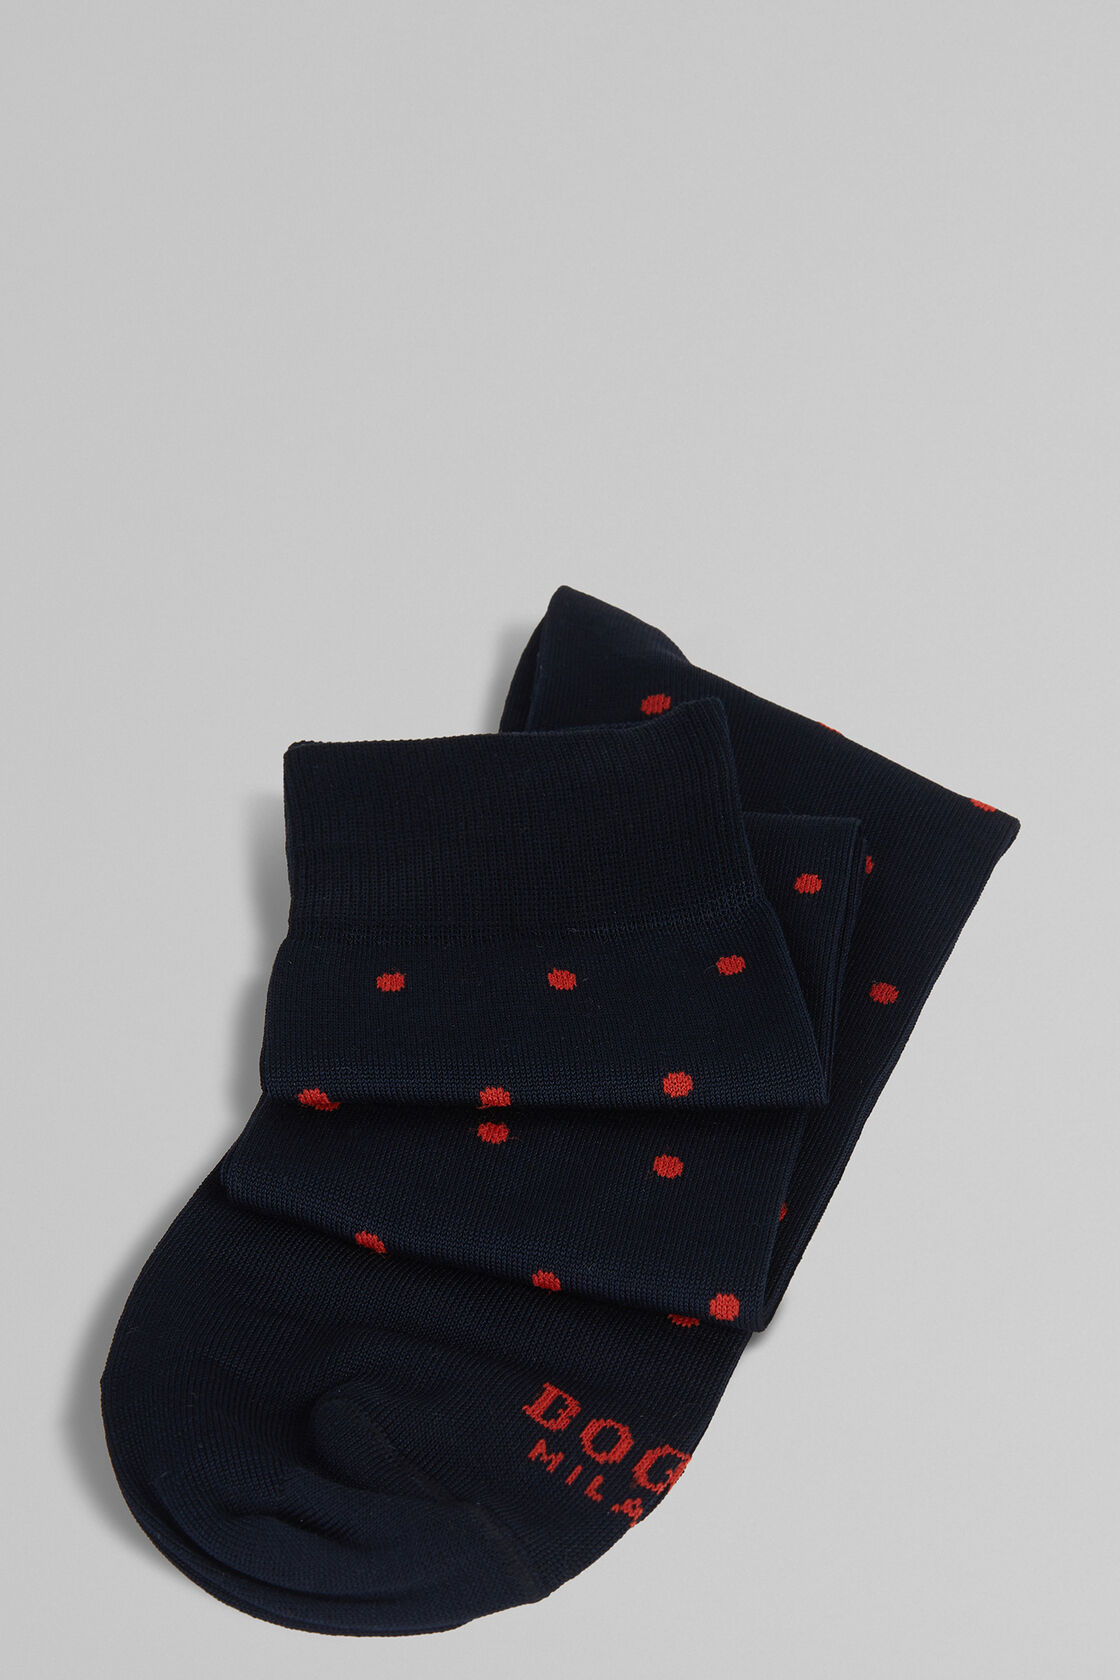 CALZA LUNGA IN COTONE STRETCH A POIS, NAVY - ROSSO, hi-res